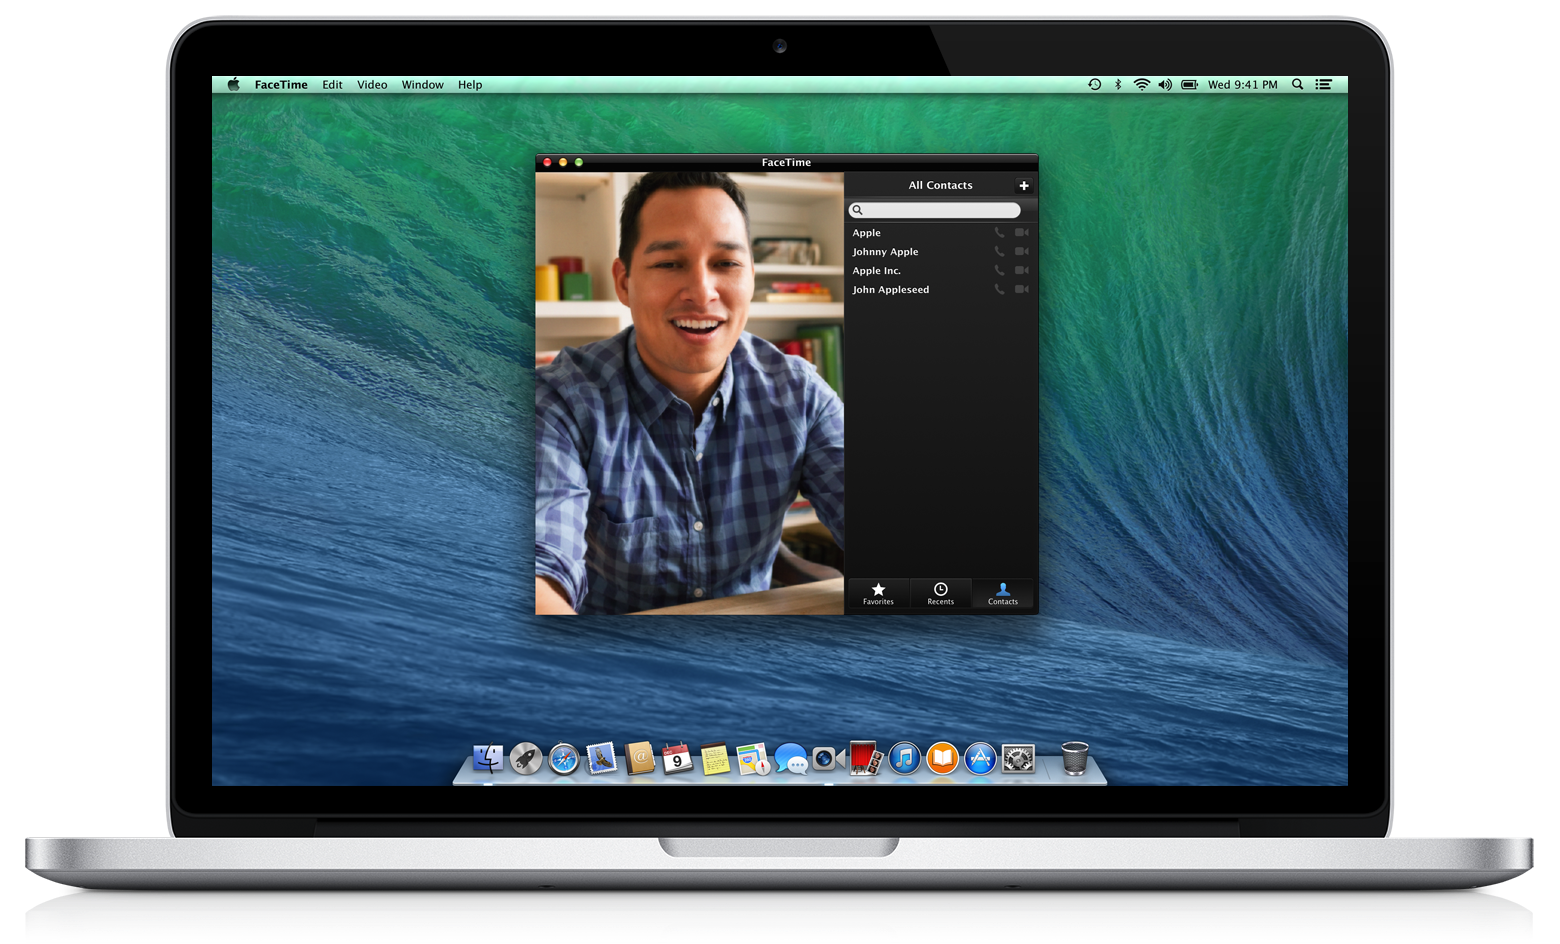 Mac using FaceTime with built-in camera